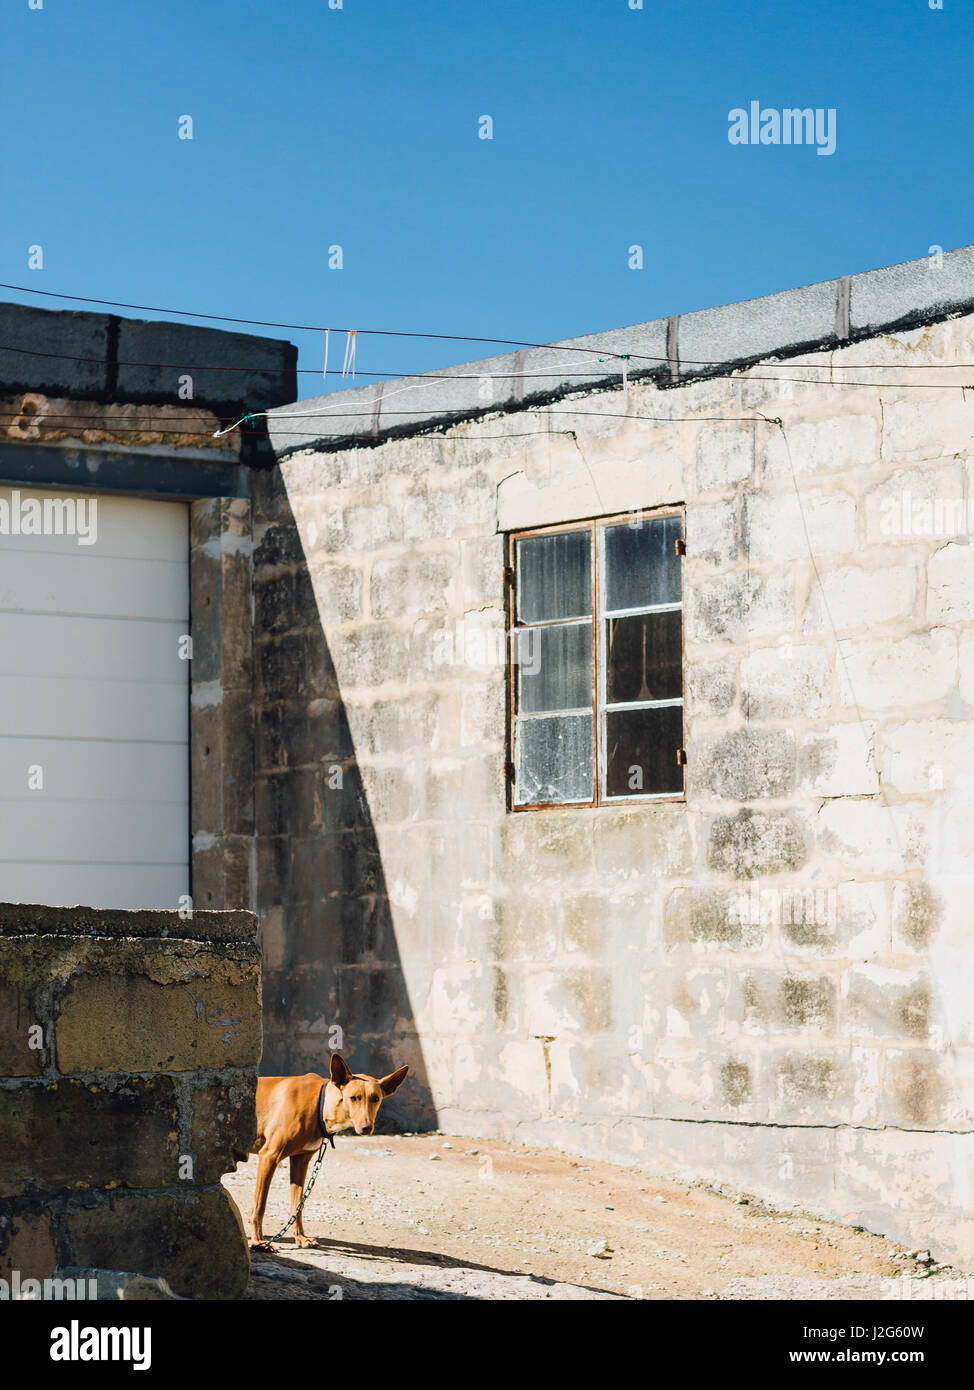 Bahrija, Malta: A timid chained dog (Pharaoh hound) peeks out from behind a low wall in the countryside just outside Stock Photo